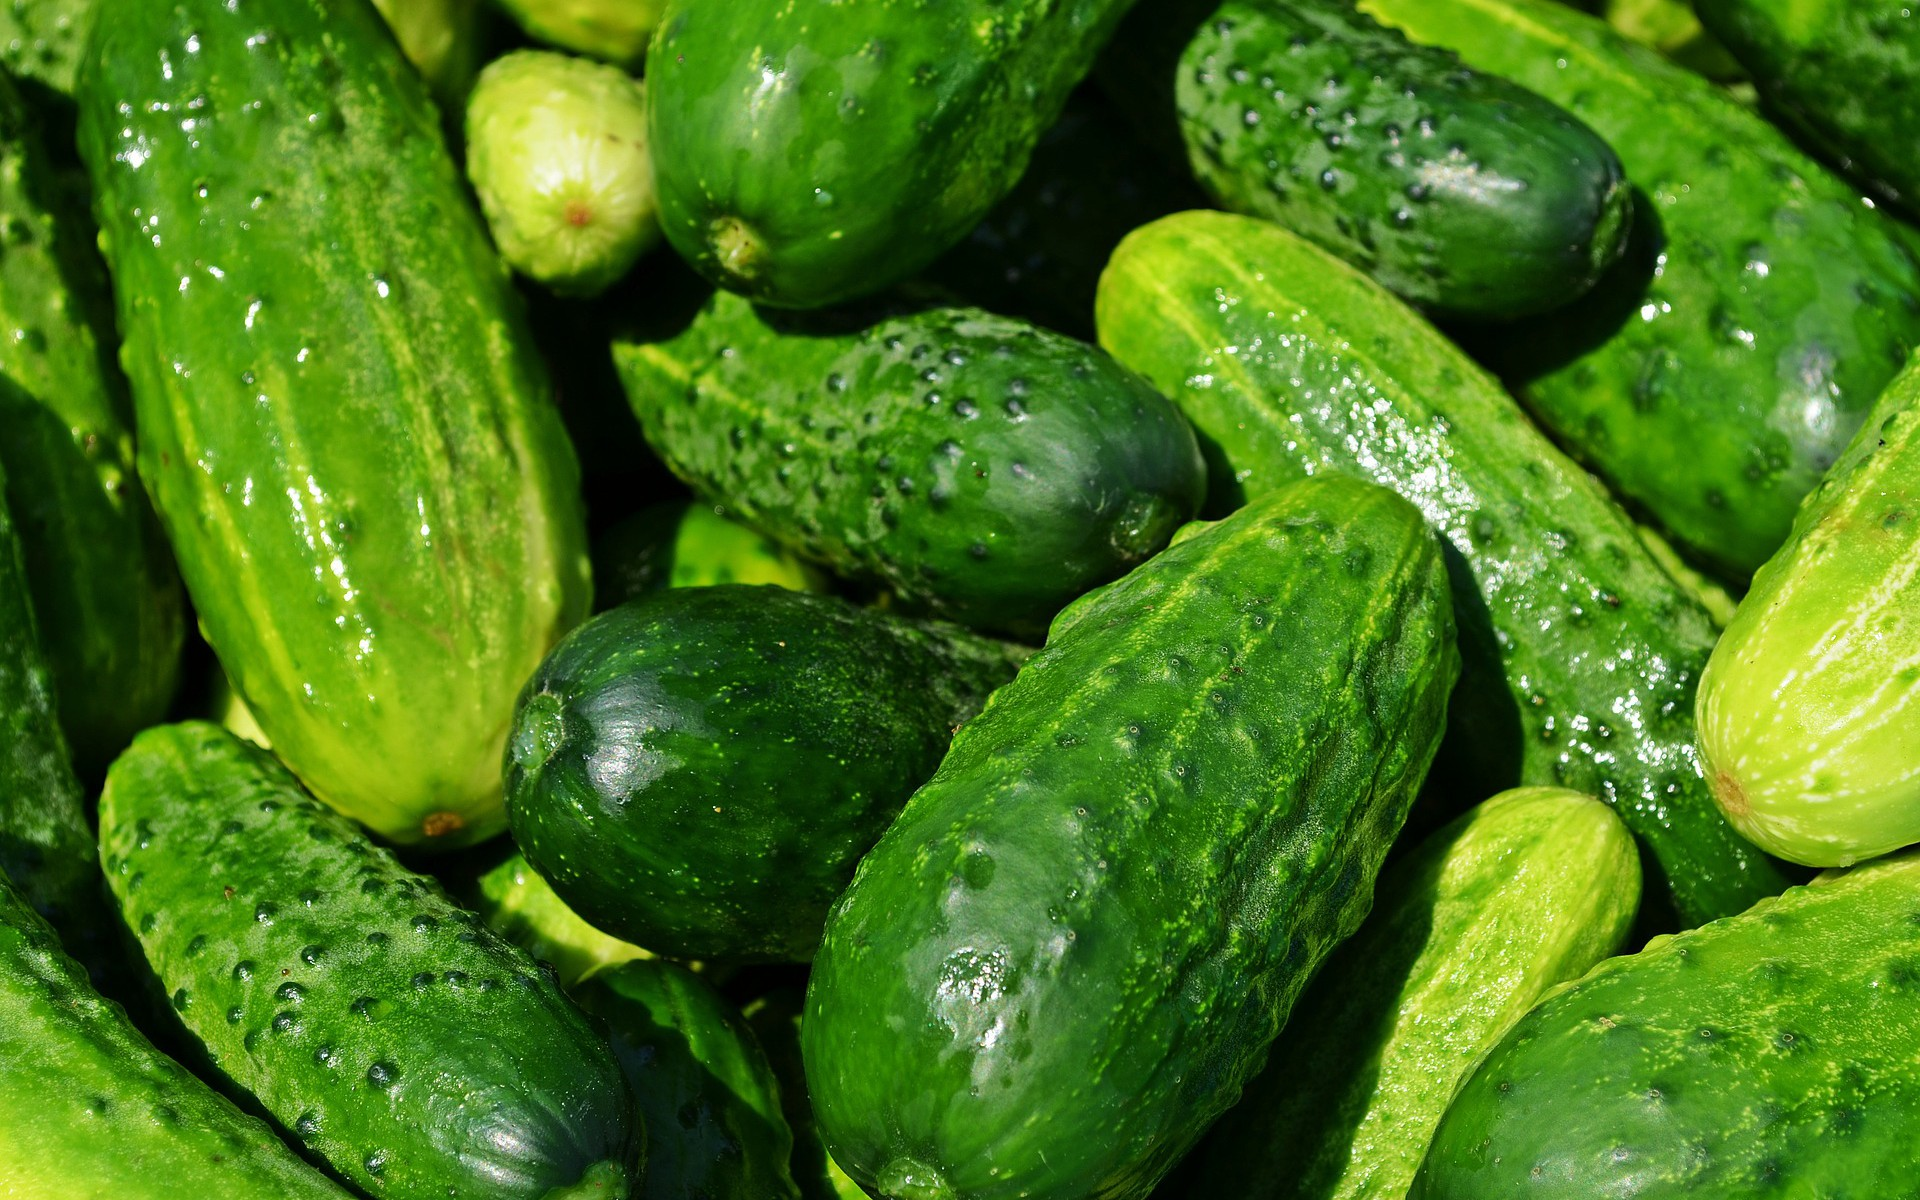 Using Dependency Injectors to Simplify Cucumber Code